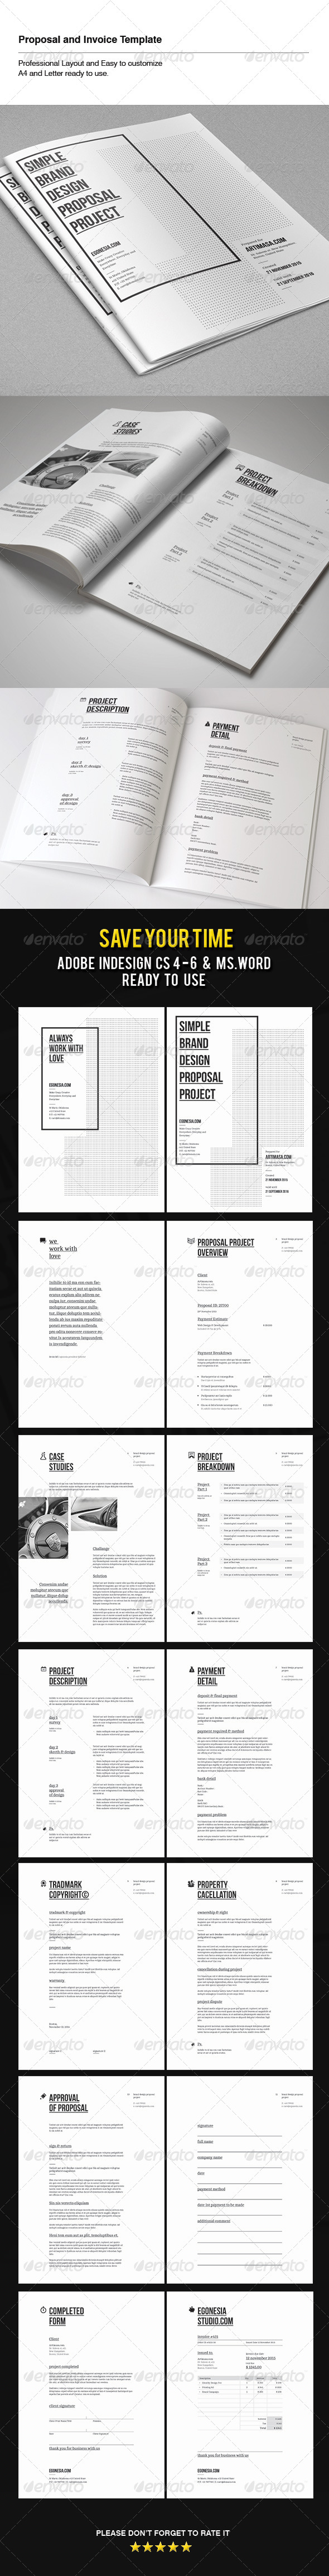 GraphicRiver Proposal & Invoice Template 6199301